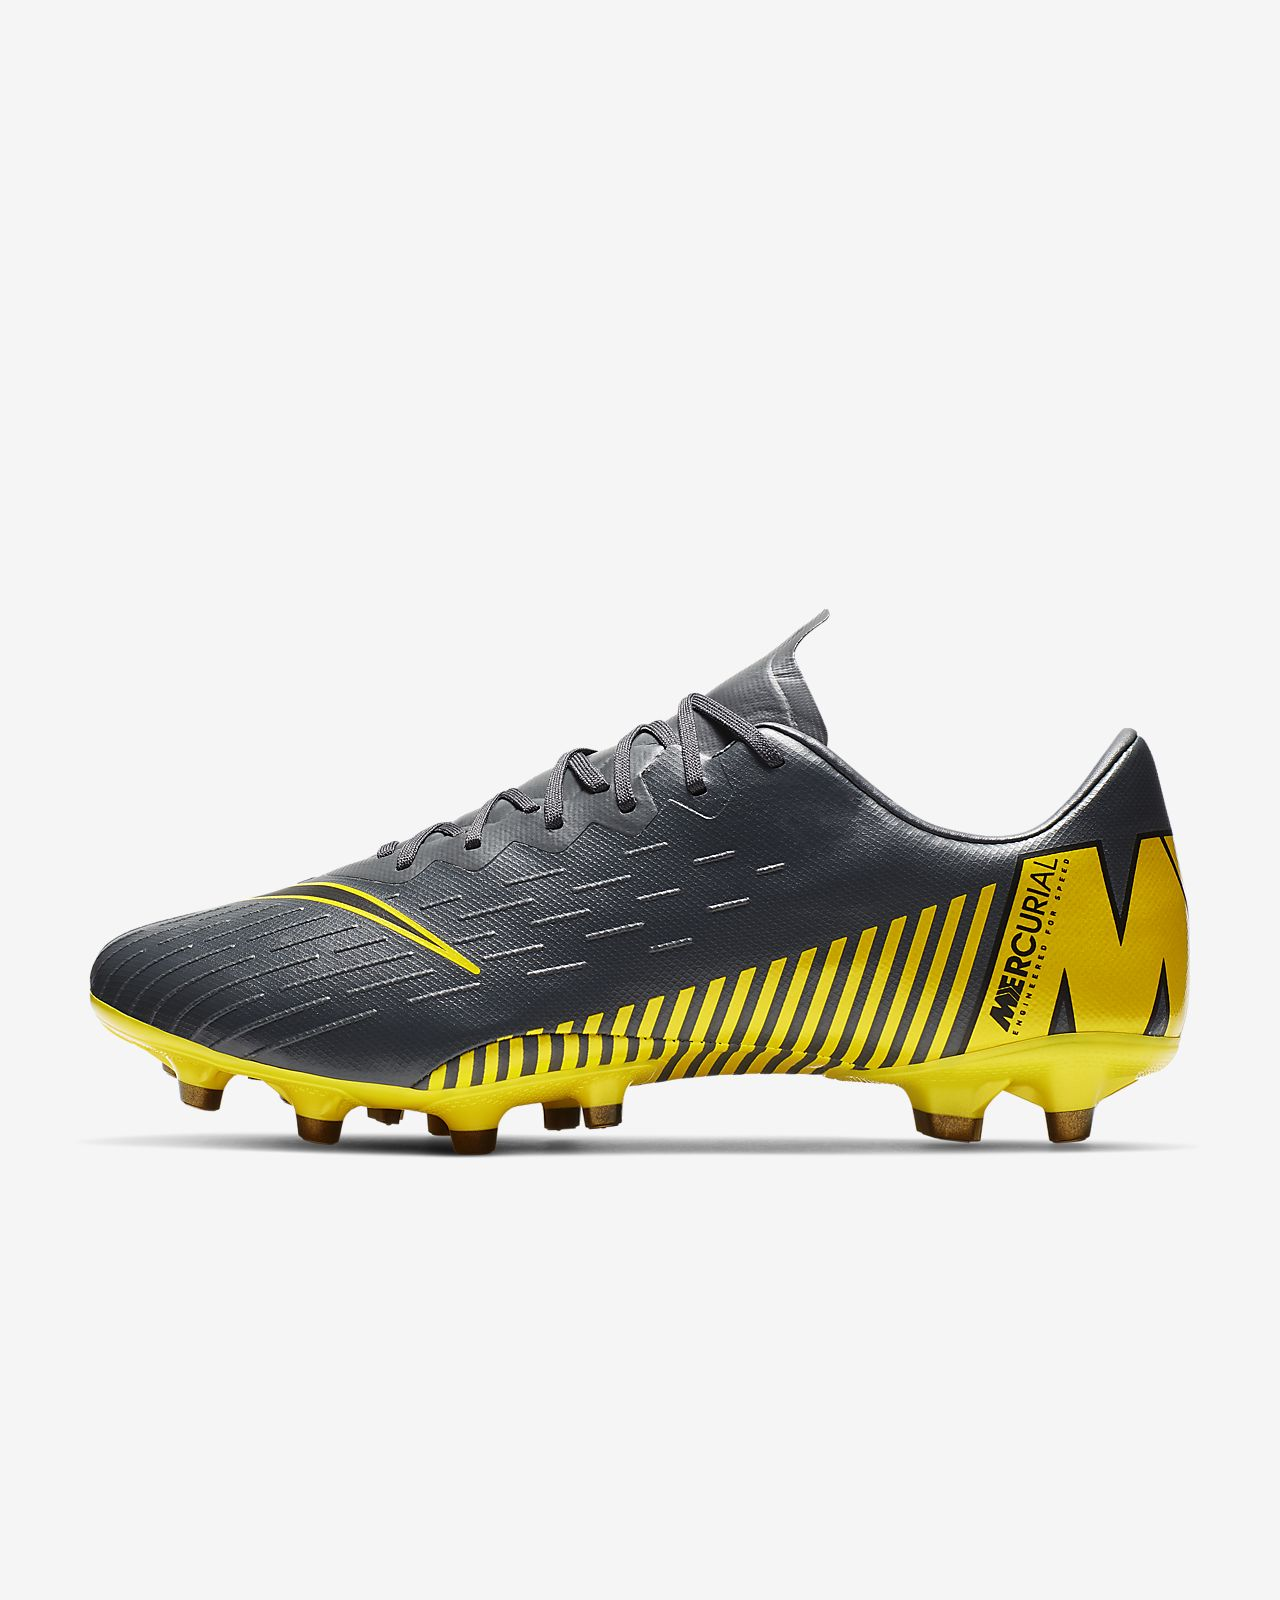 Nike Mercurial Vapor XII Pro AG-PRO Artificial-Grass Football Boot